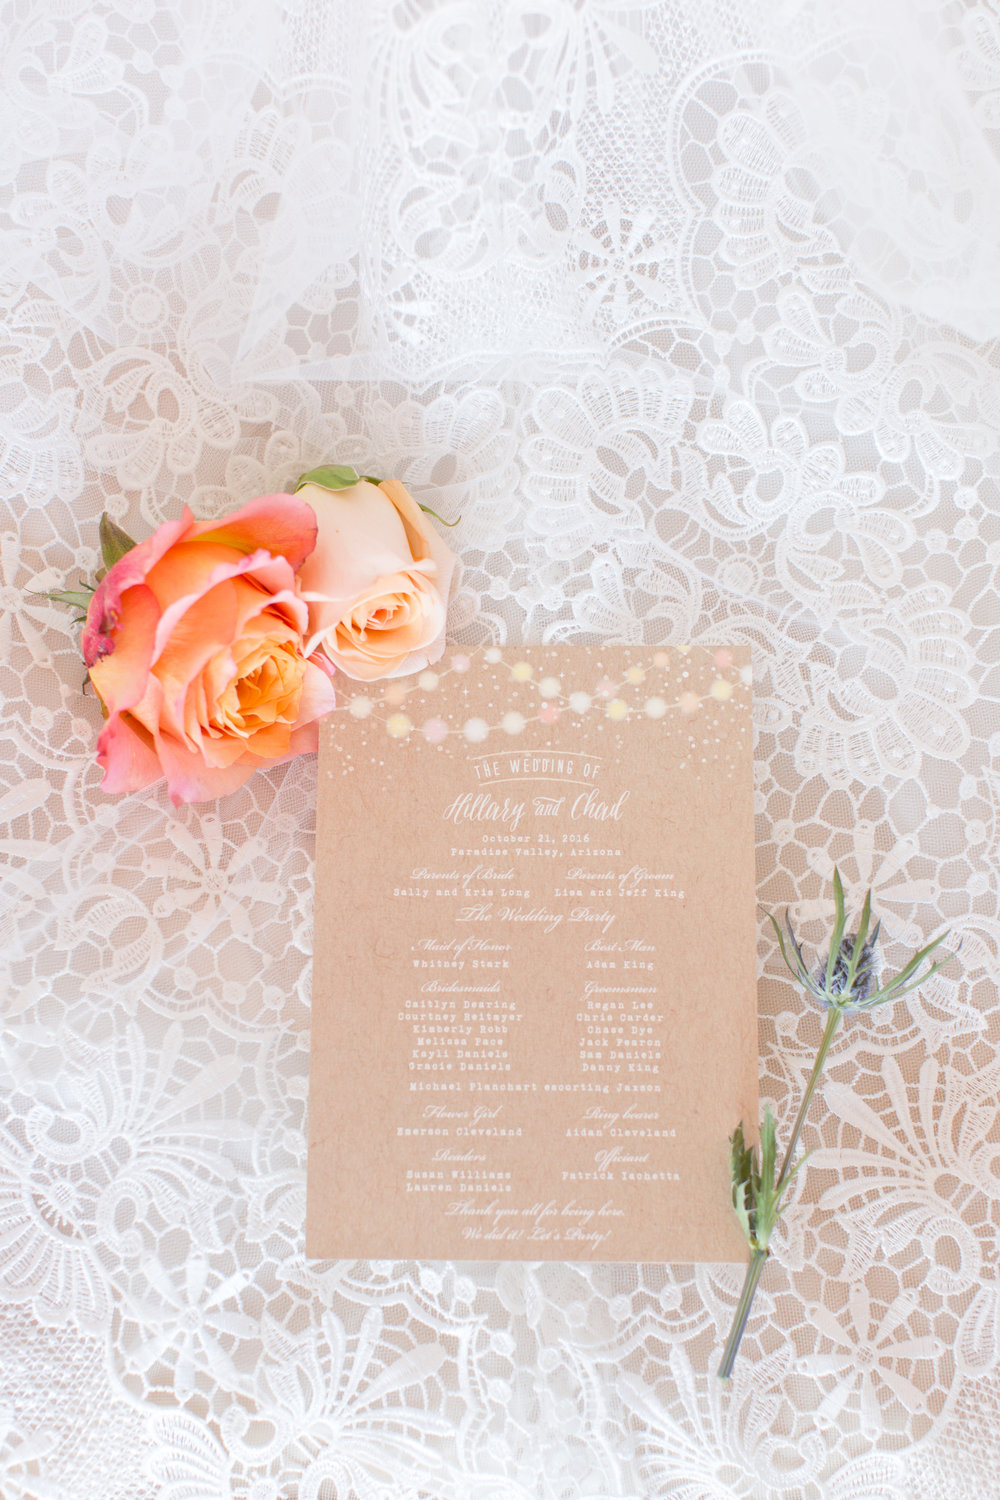 Phoenix-Scottsdale-Arizona-Wedding-Planner-Wedding-Venue-Destination-Wedding-Planner, Wedding Stationery, Neautral wedding invitations, sunset wedding, Arizona Sunset Wedding.